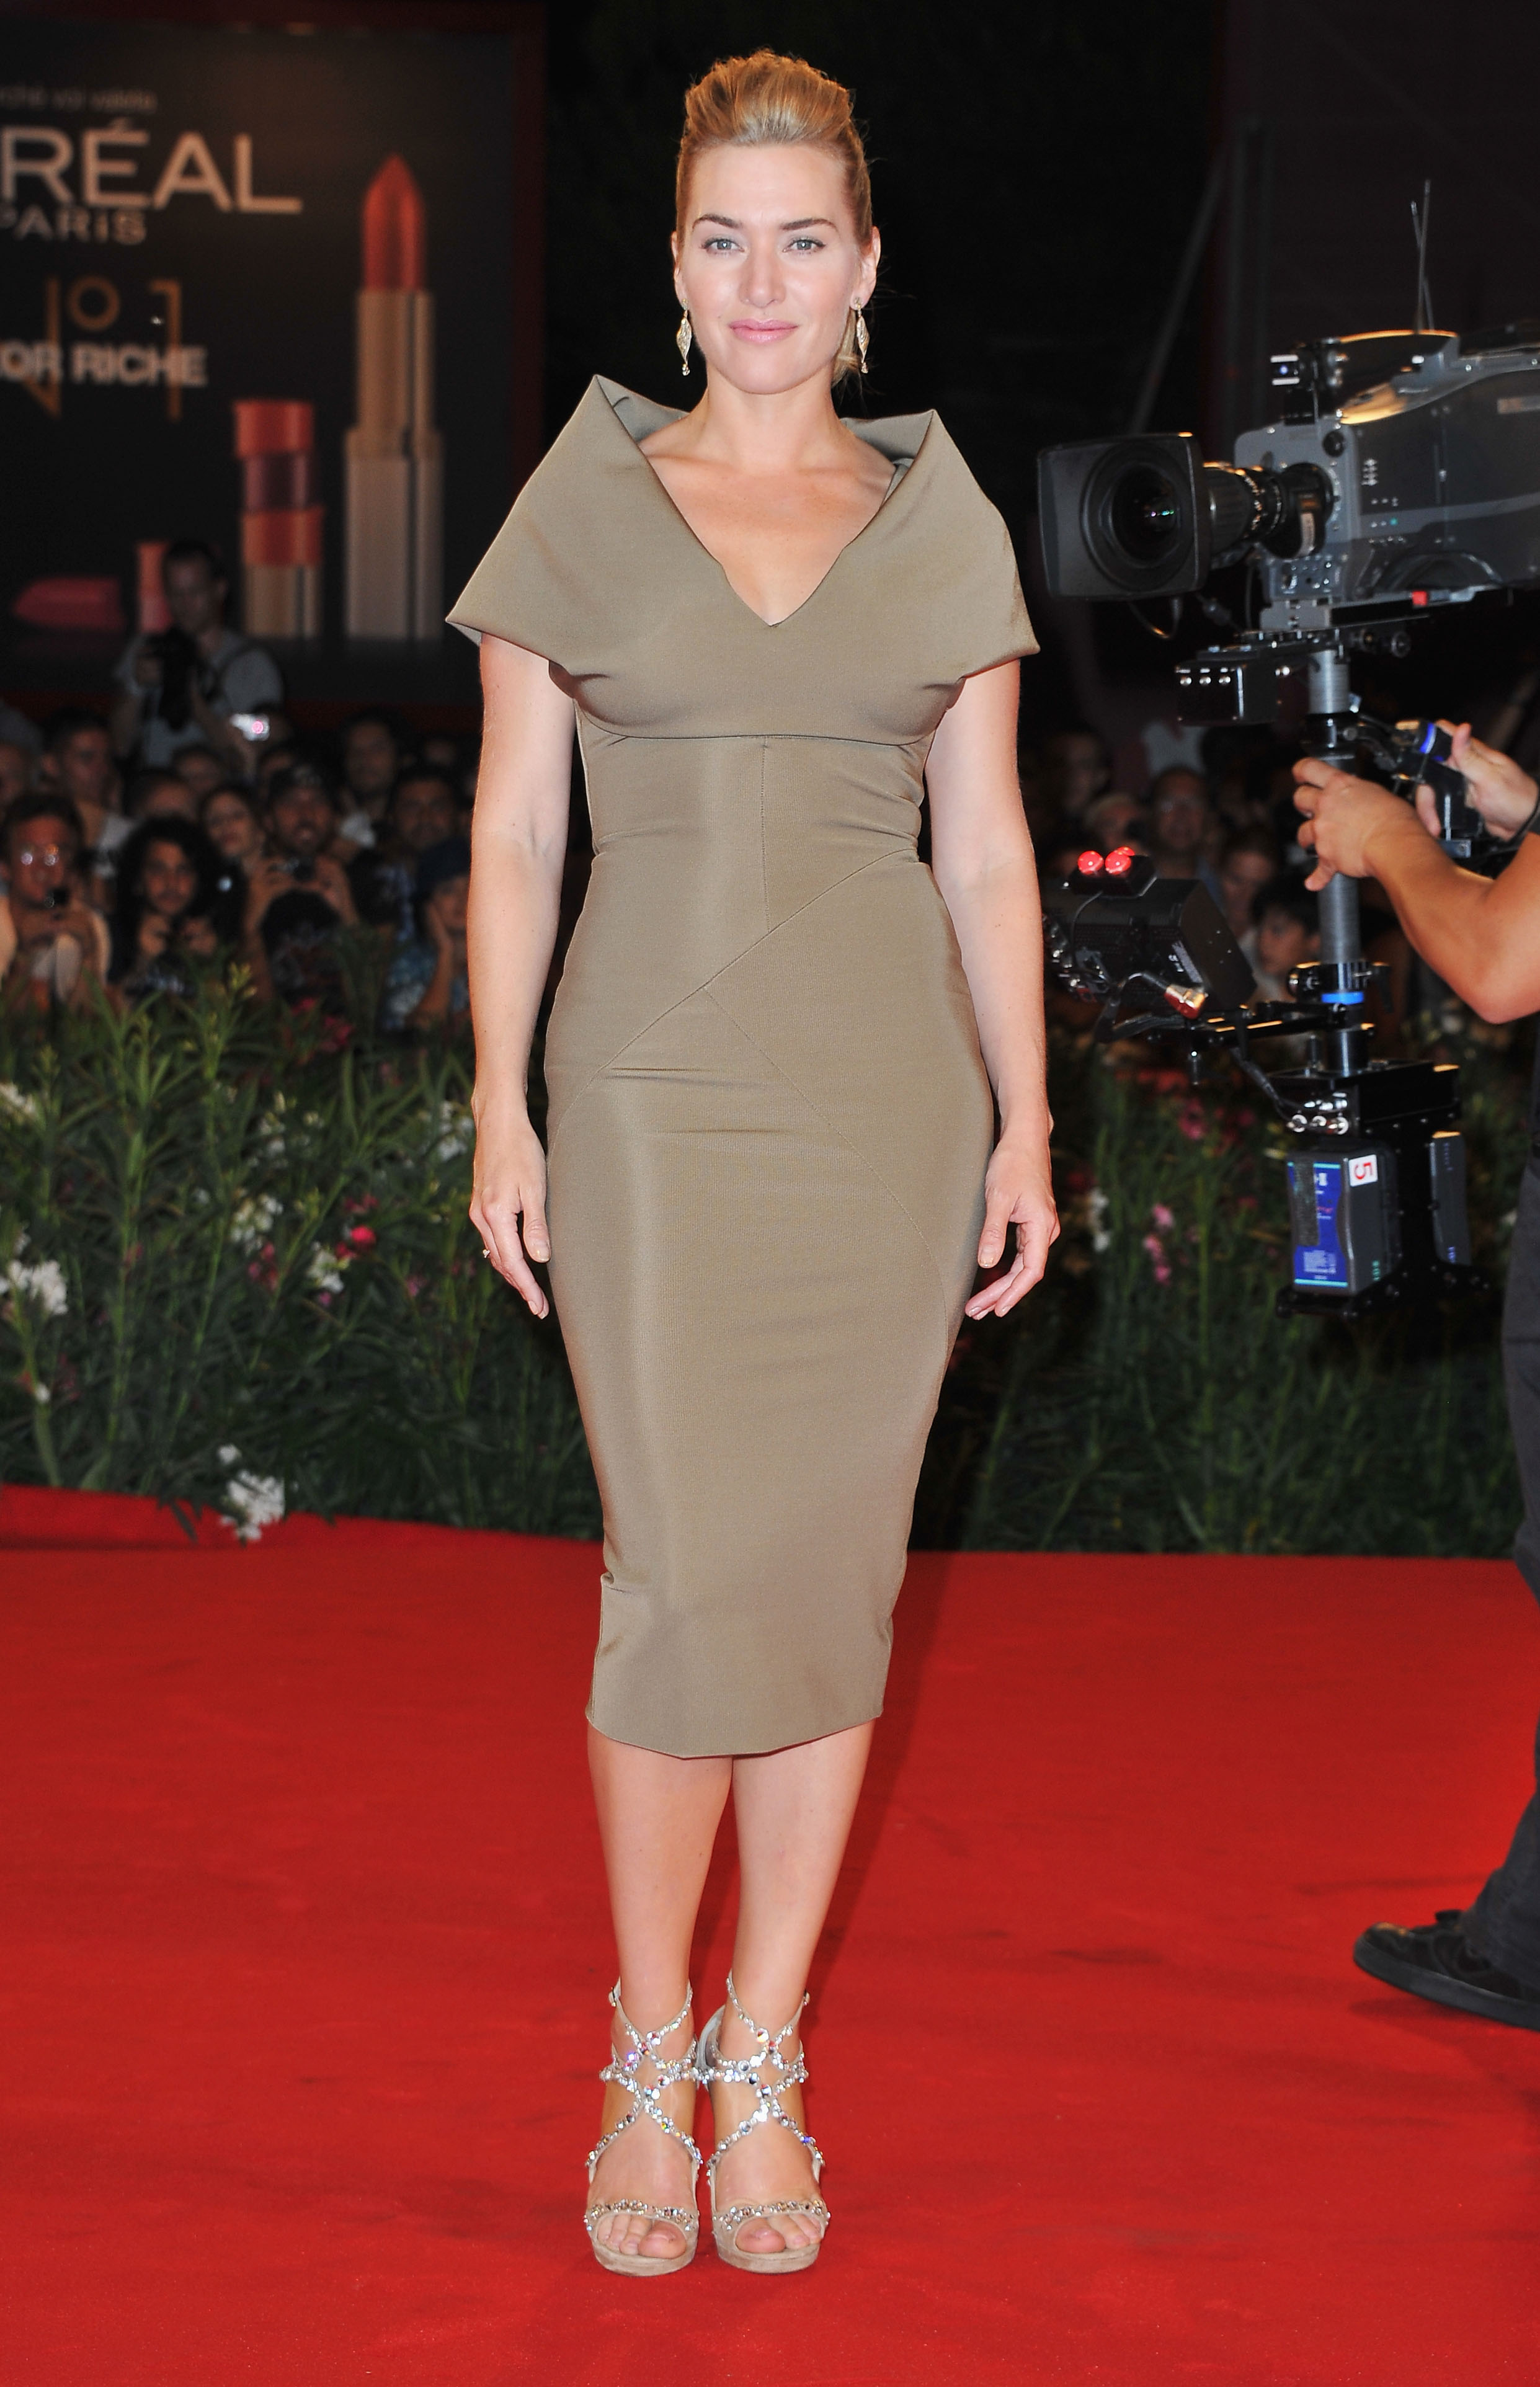 Kate Winslet in a structured dress by Victoria Beckham.